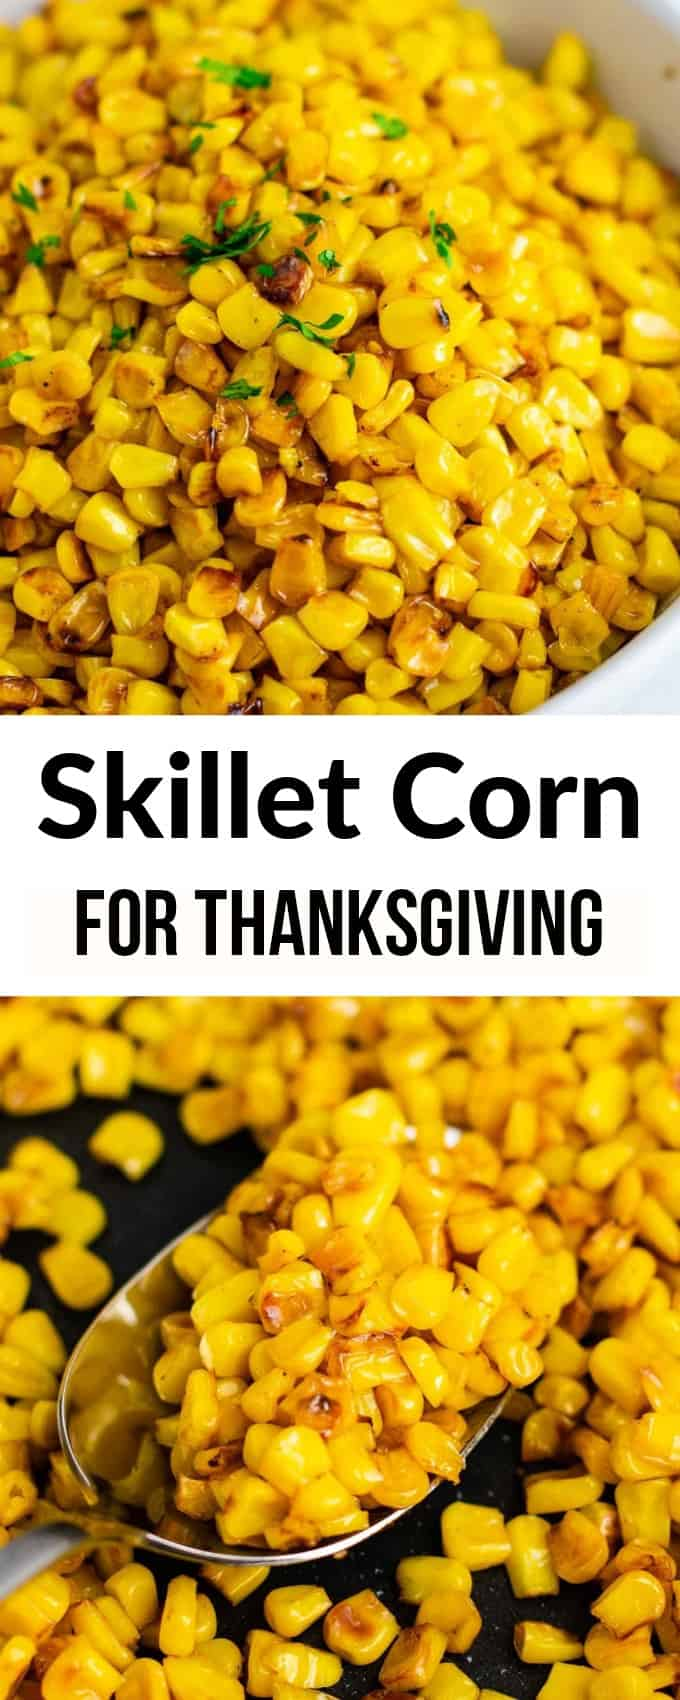 corn recipes for thanksgiving - this is the BEST skillet corn recipe! We make it every year and it's one of my favorite Thanksgiving side dishes! #thanksgiving #skilletcorn #thanksgivingsidedish #sidedish #corn